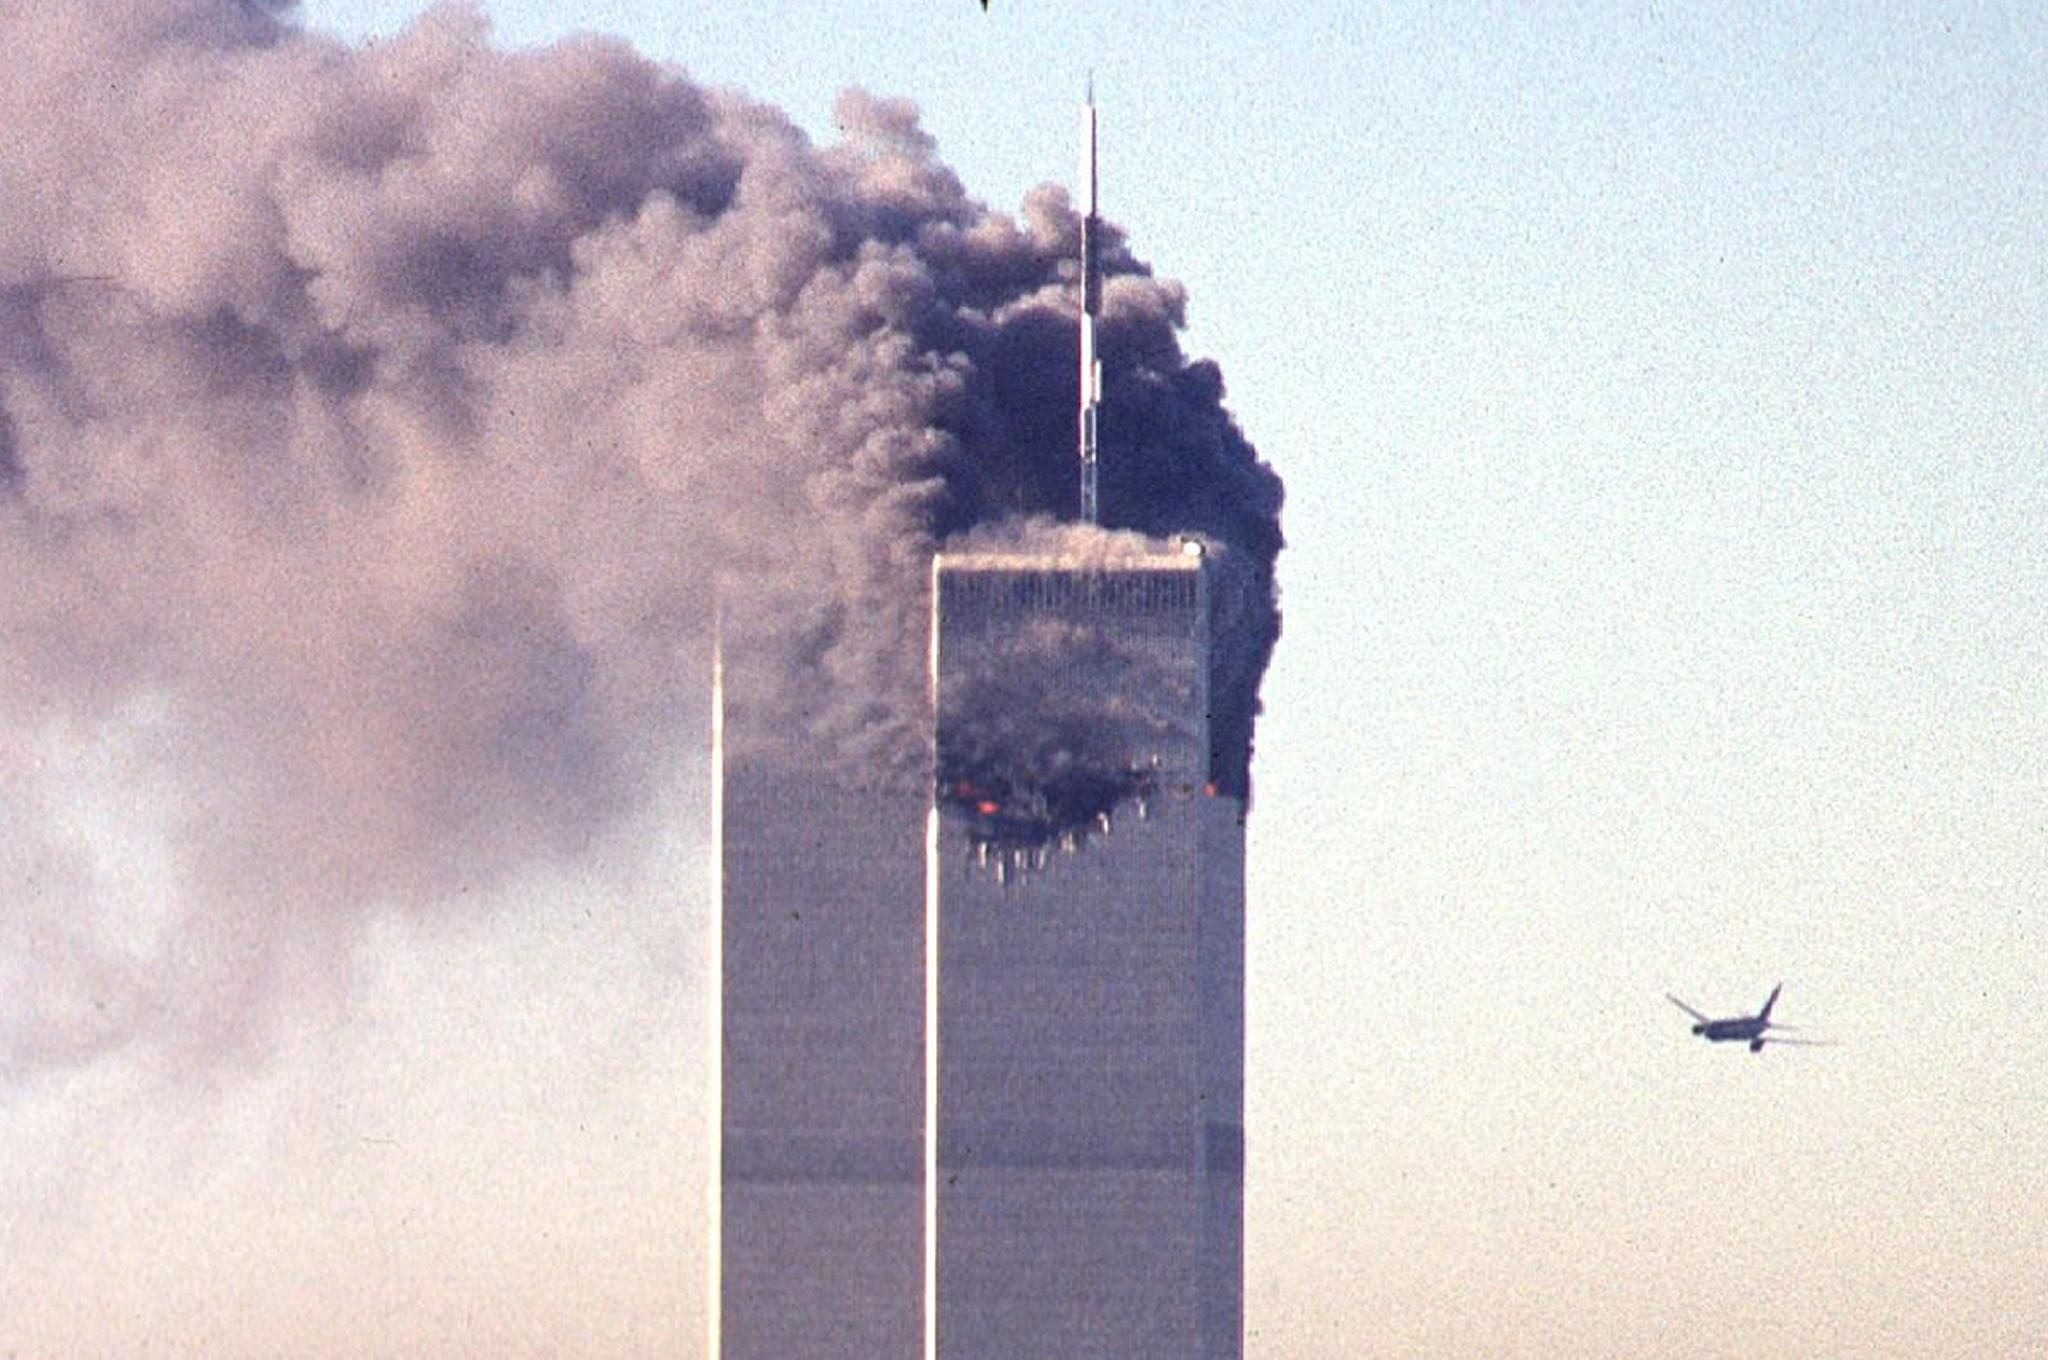 Debunking 9/11 Myths: About the Airplanes